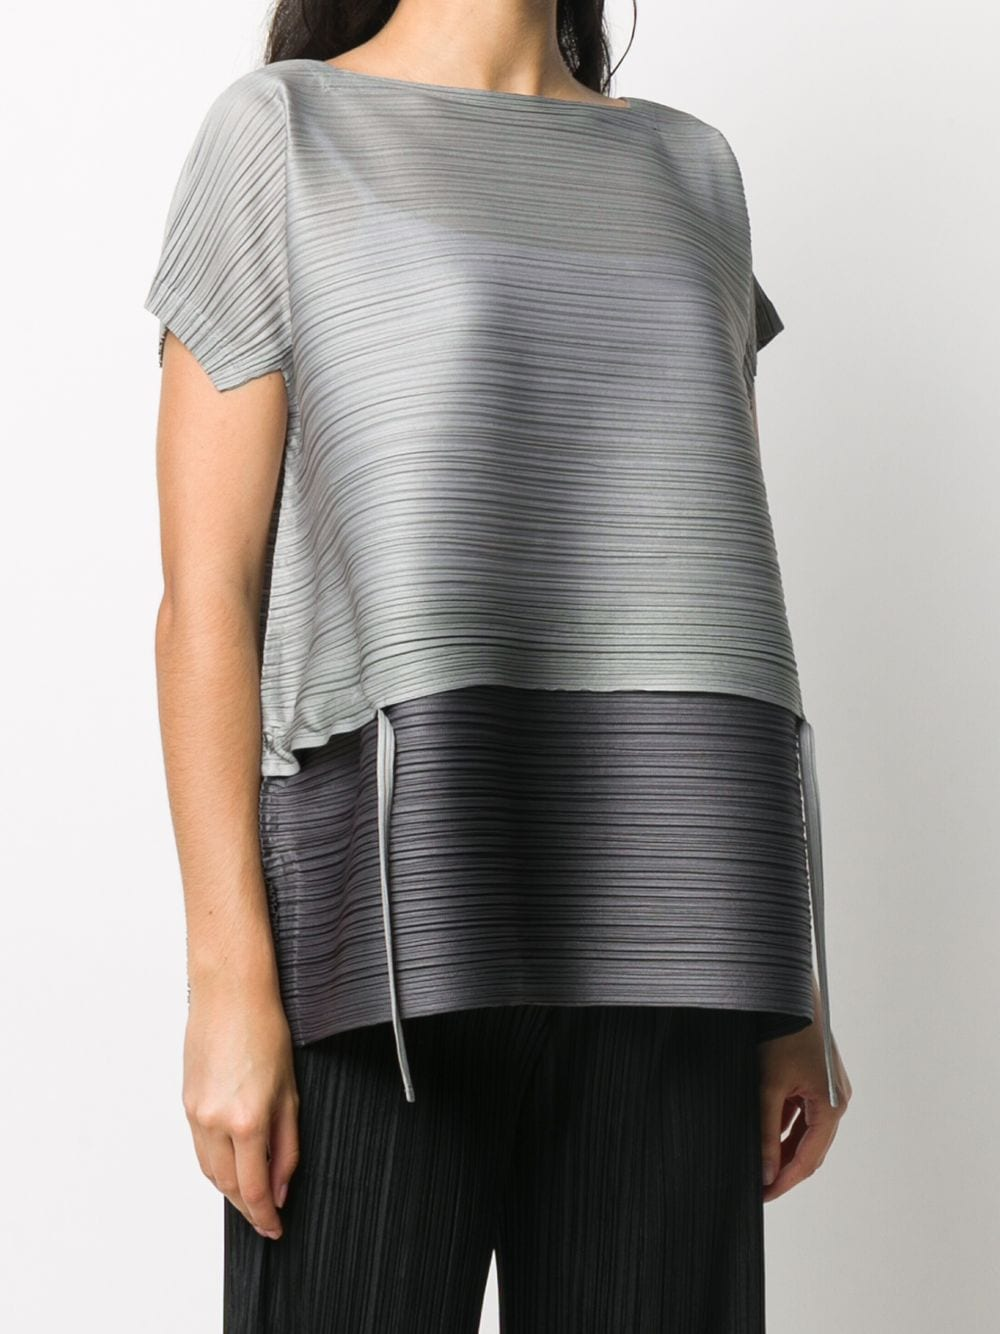 Picture of Issey Miyake Pleats Please | Plissé Pleated Layered Top